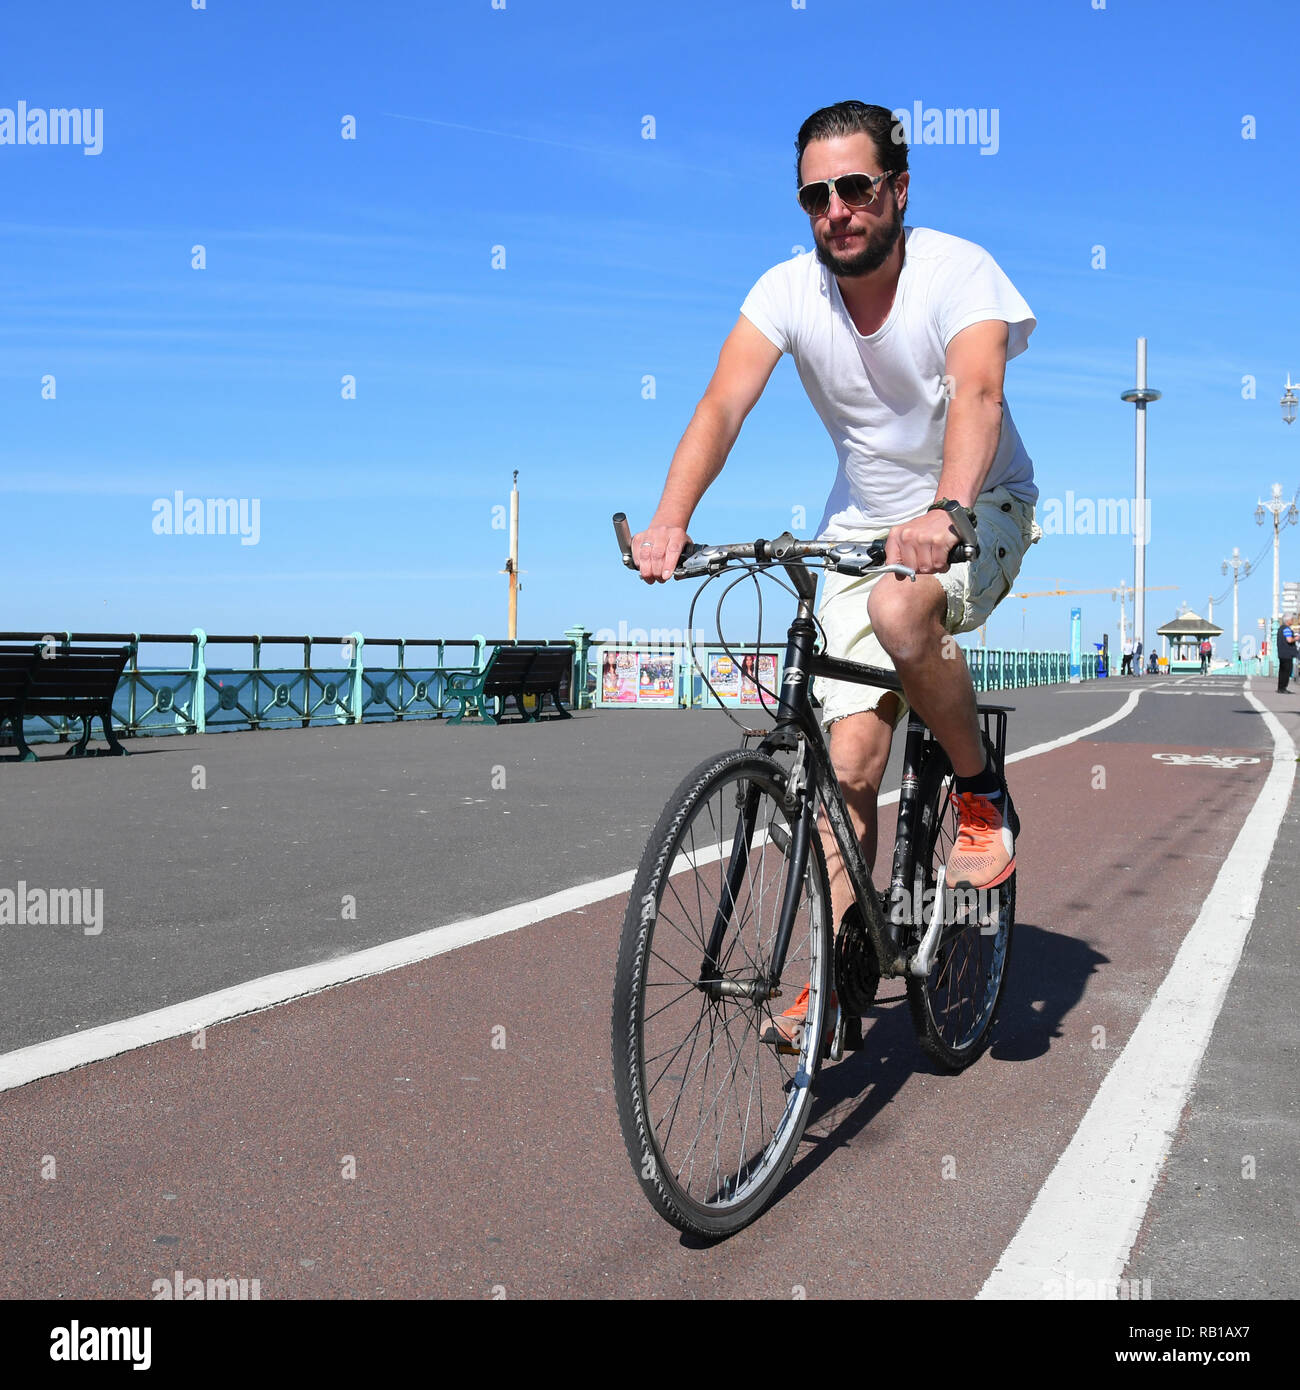 Man in 20s or 30s cycling along a cycle lane on the promenade in Brighton, East Sussex, England, UK. - Stock Image